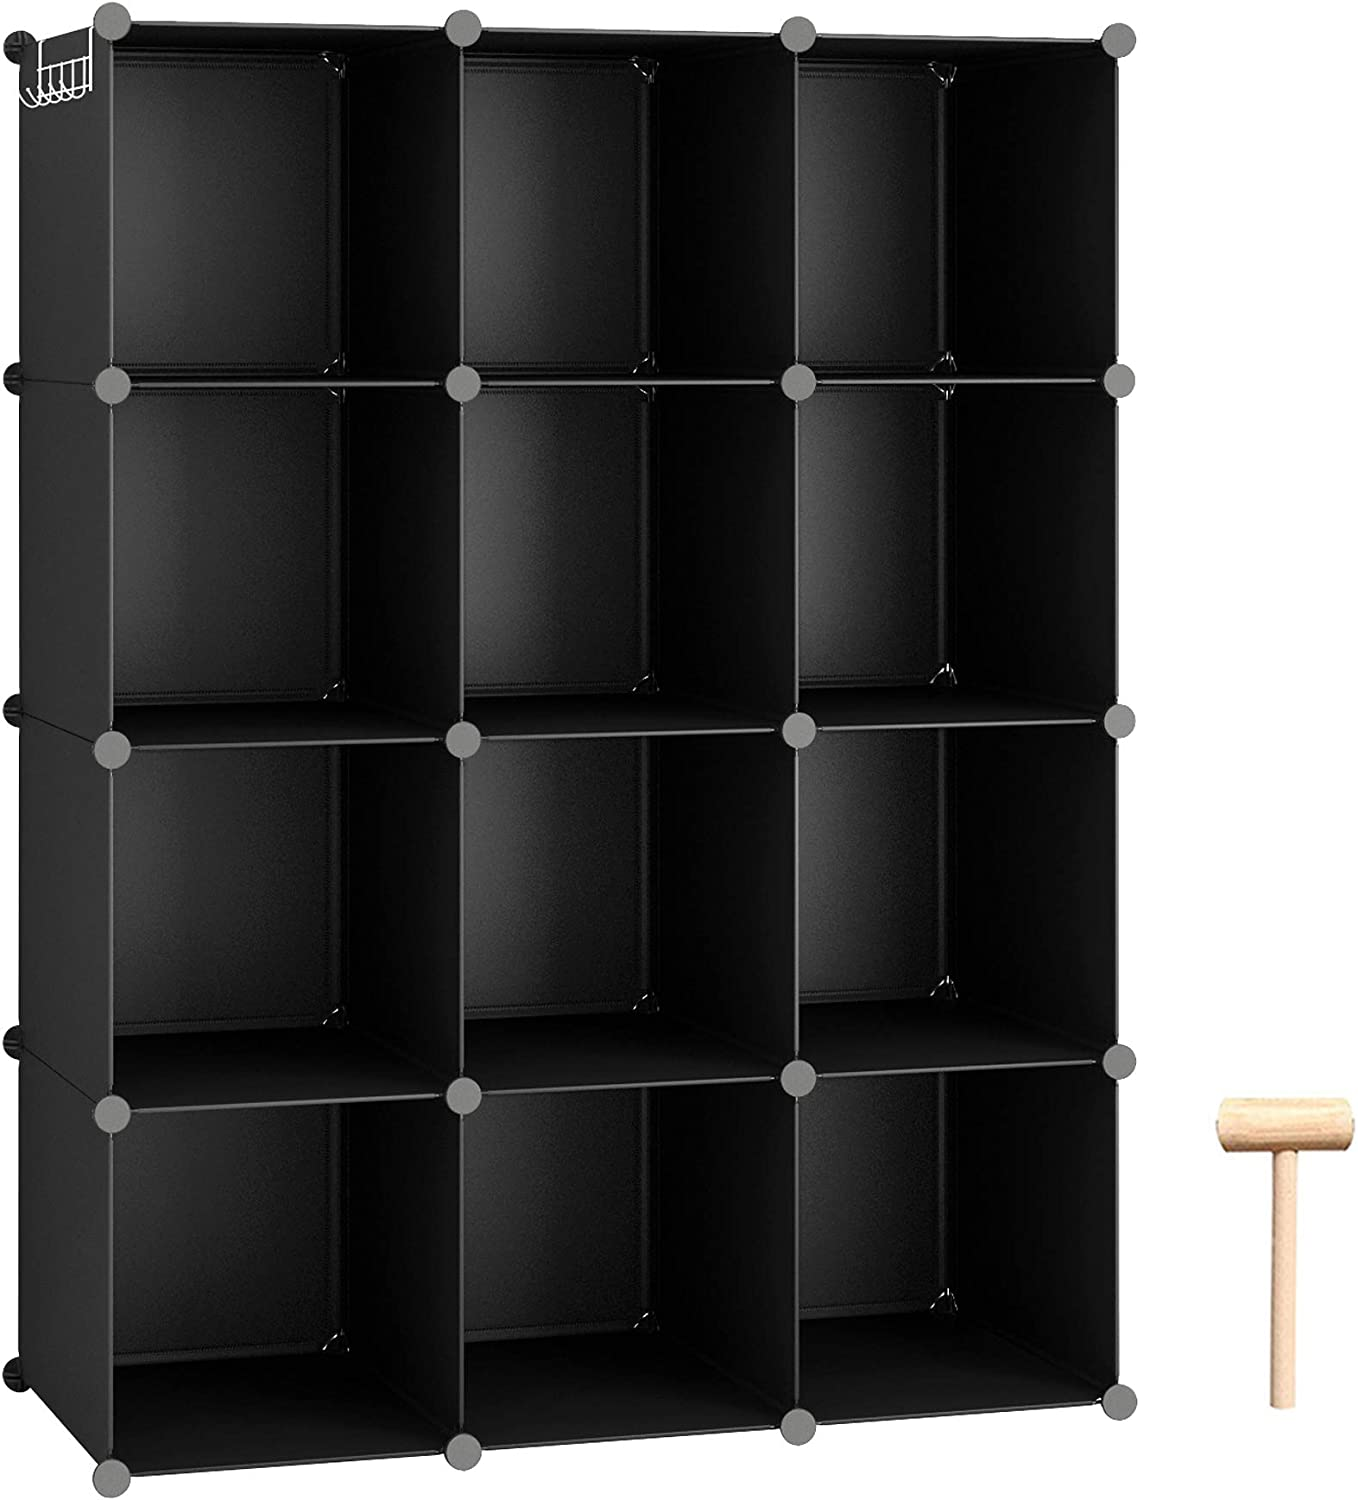 "C&AHOME Cube Storage Organizer, 12-Cube Shelves Units, Closet Cabinet, DIY Plastic Modular Book Shelf, Ideal for Bedroom, Living Room, Office, 36.6"" L x 12.4"" W x 48.4"" H Black"